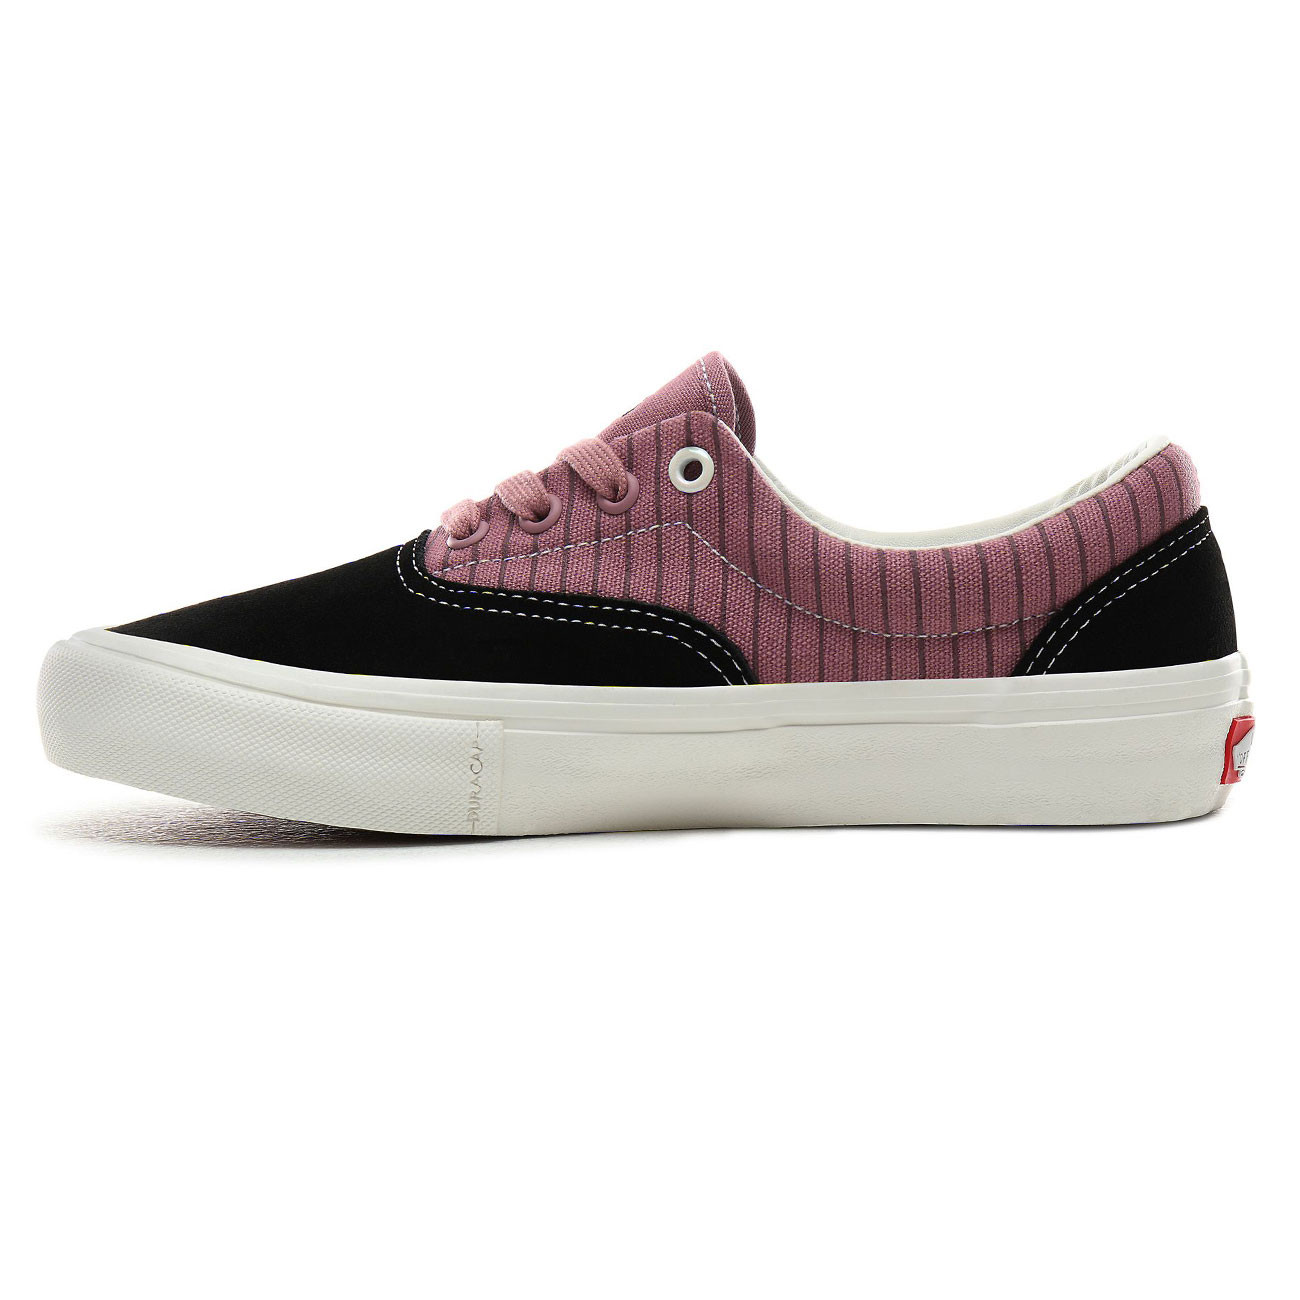 Skate shoes Vans Era Pro